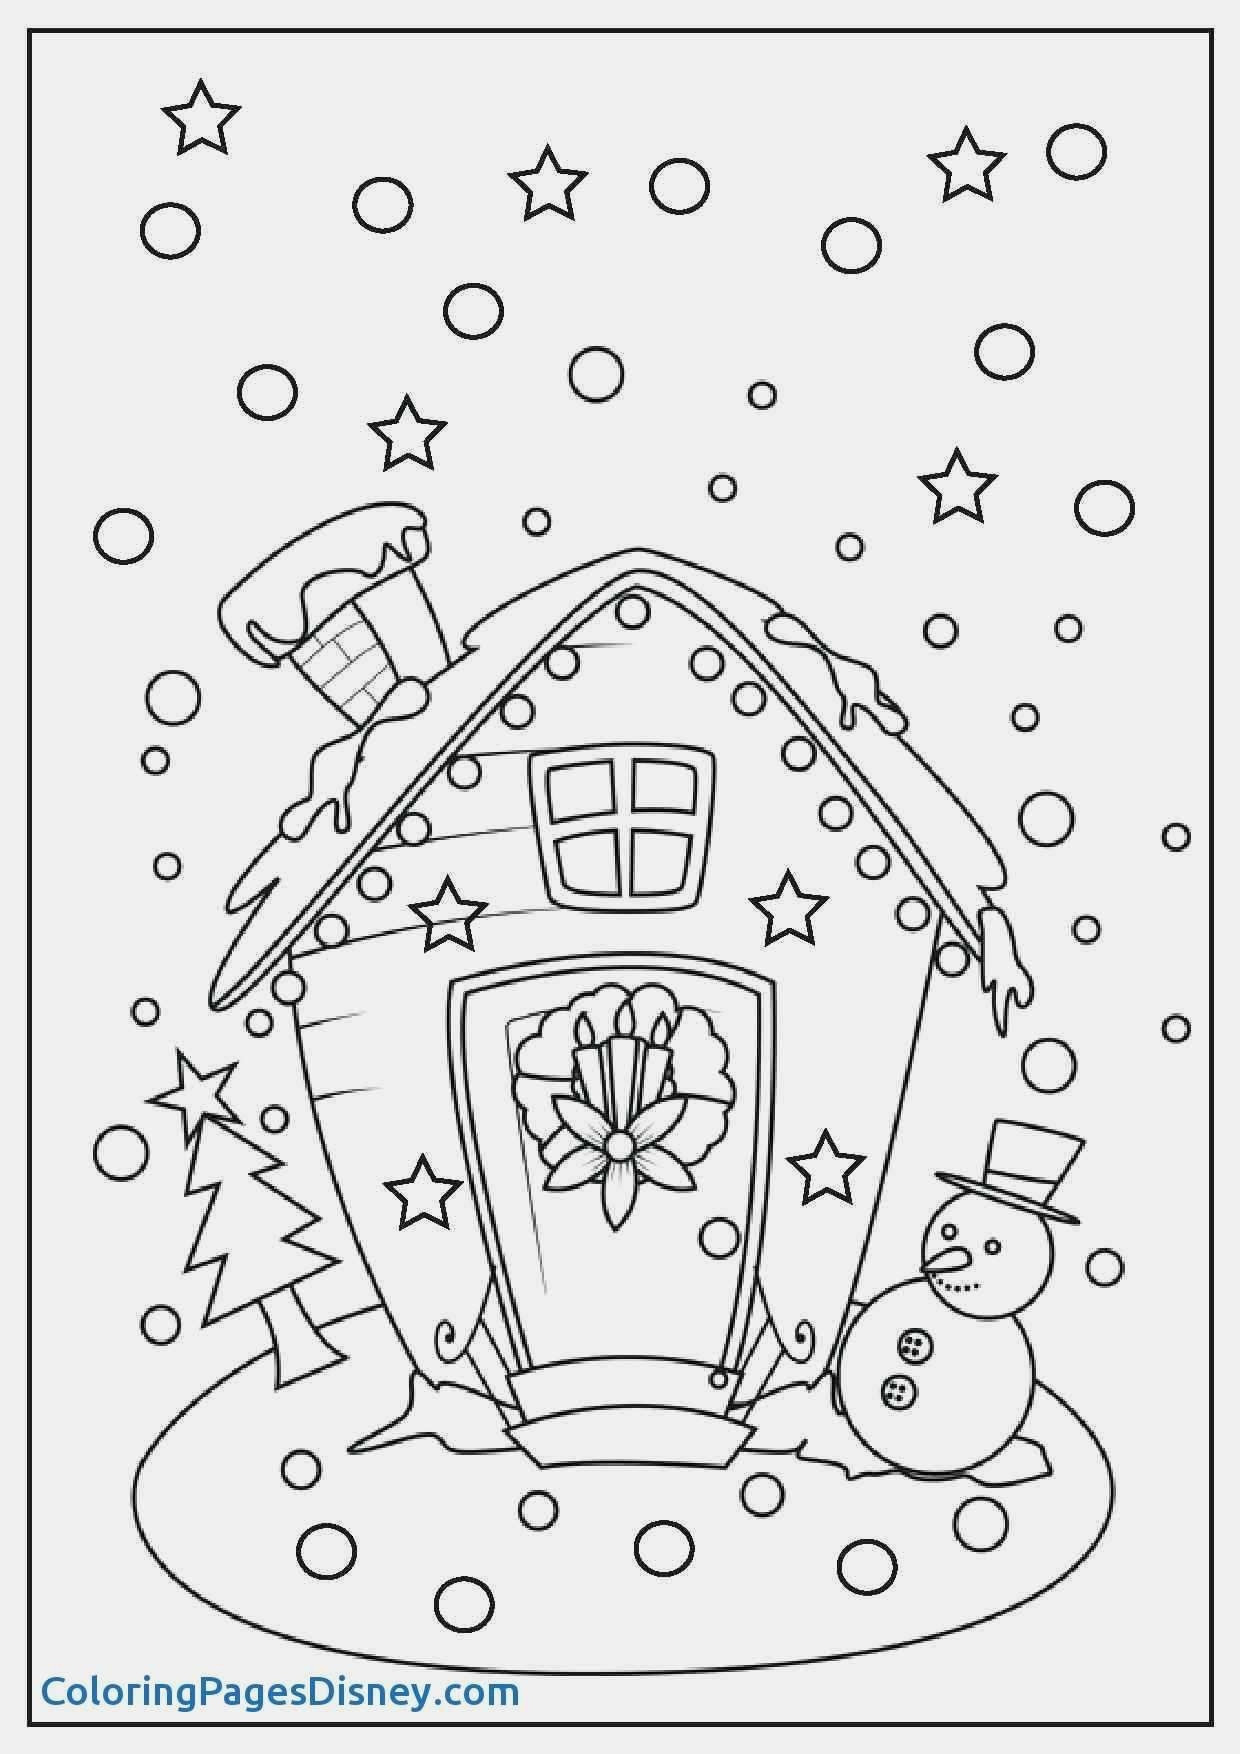 Ausmalbilder Weihnachten Hello Kitty Genial 30 Hello Kitty Free Printable Coloring Pages Collection Bilder